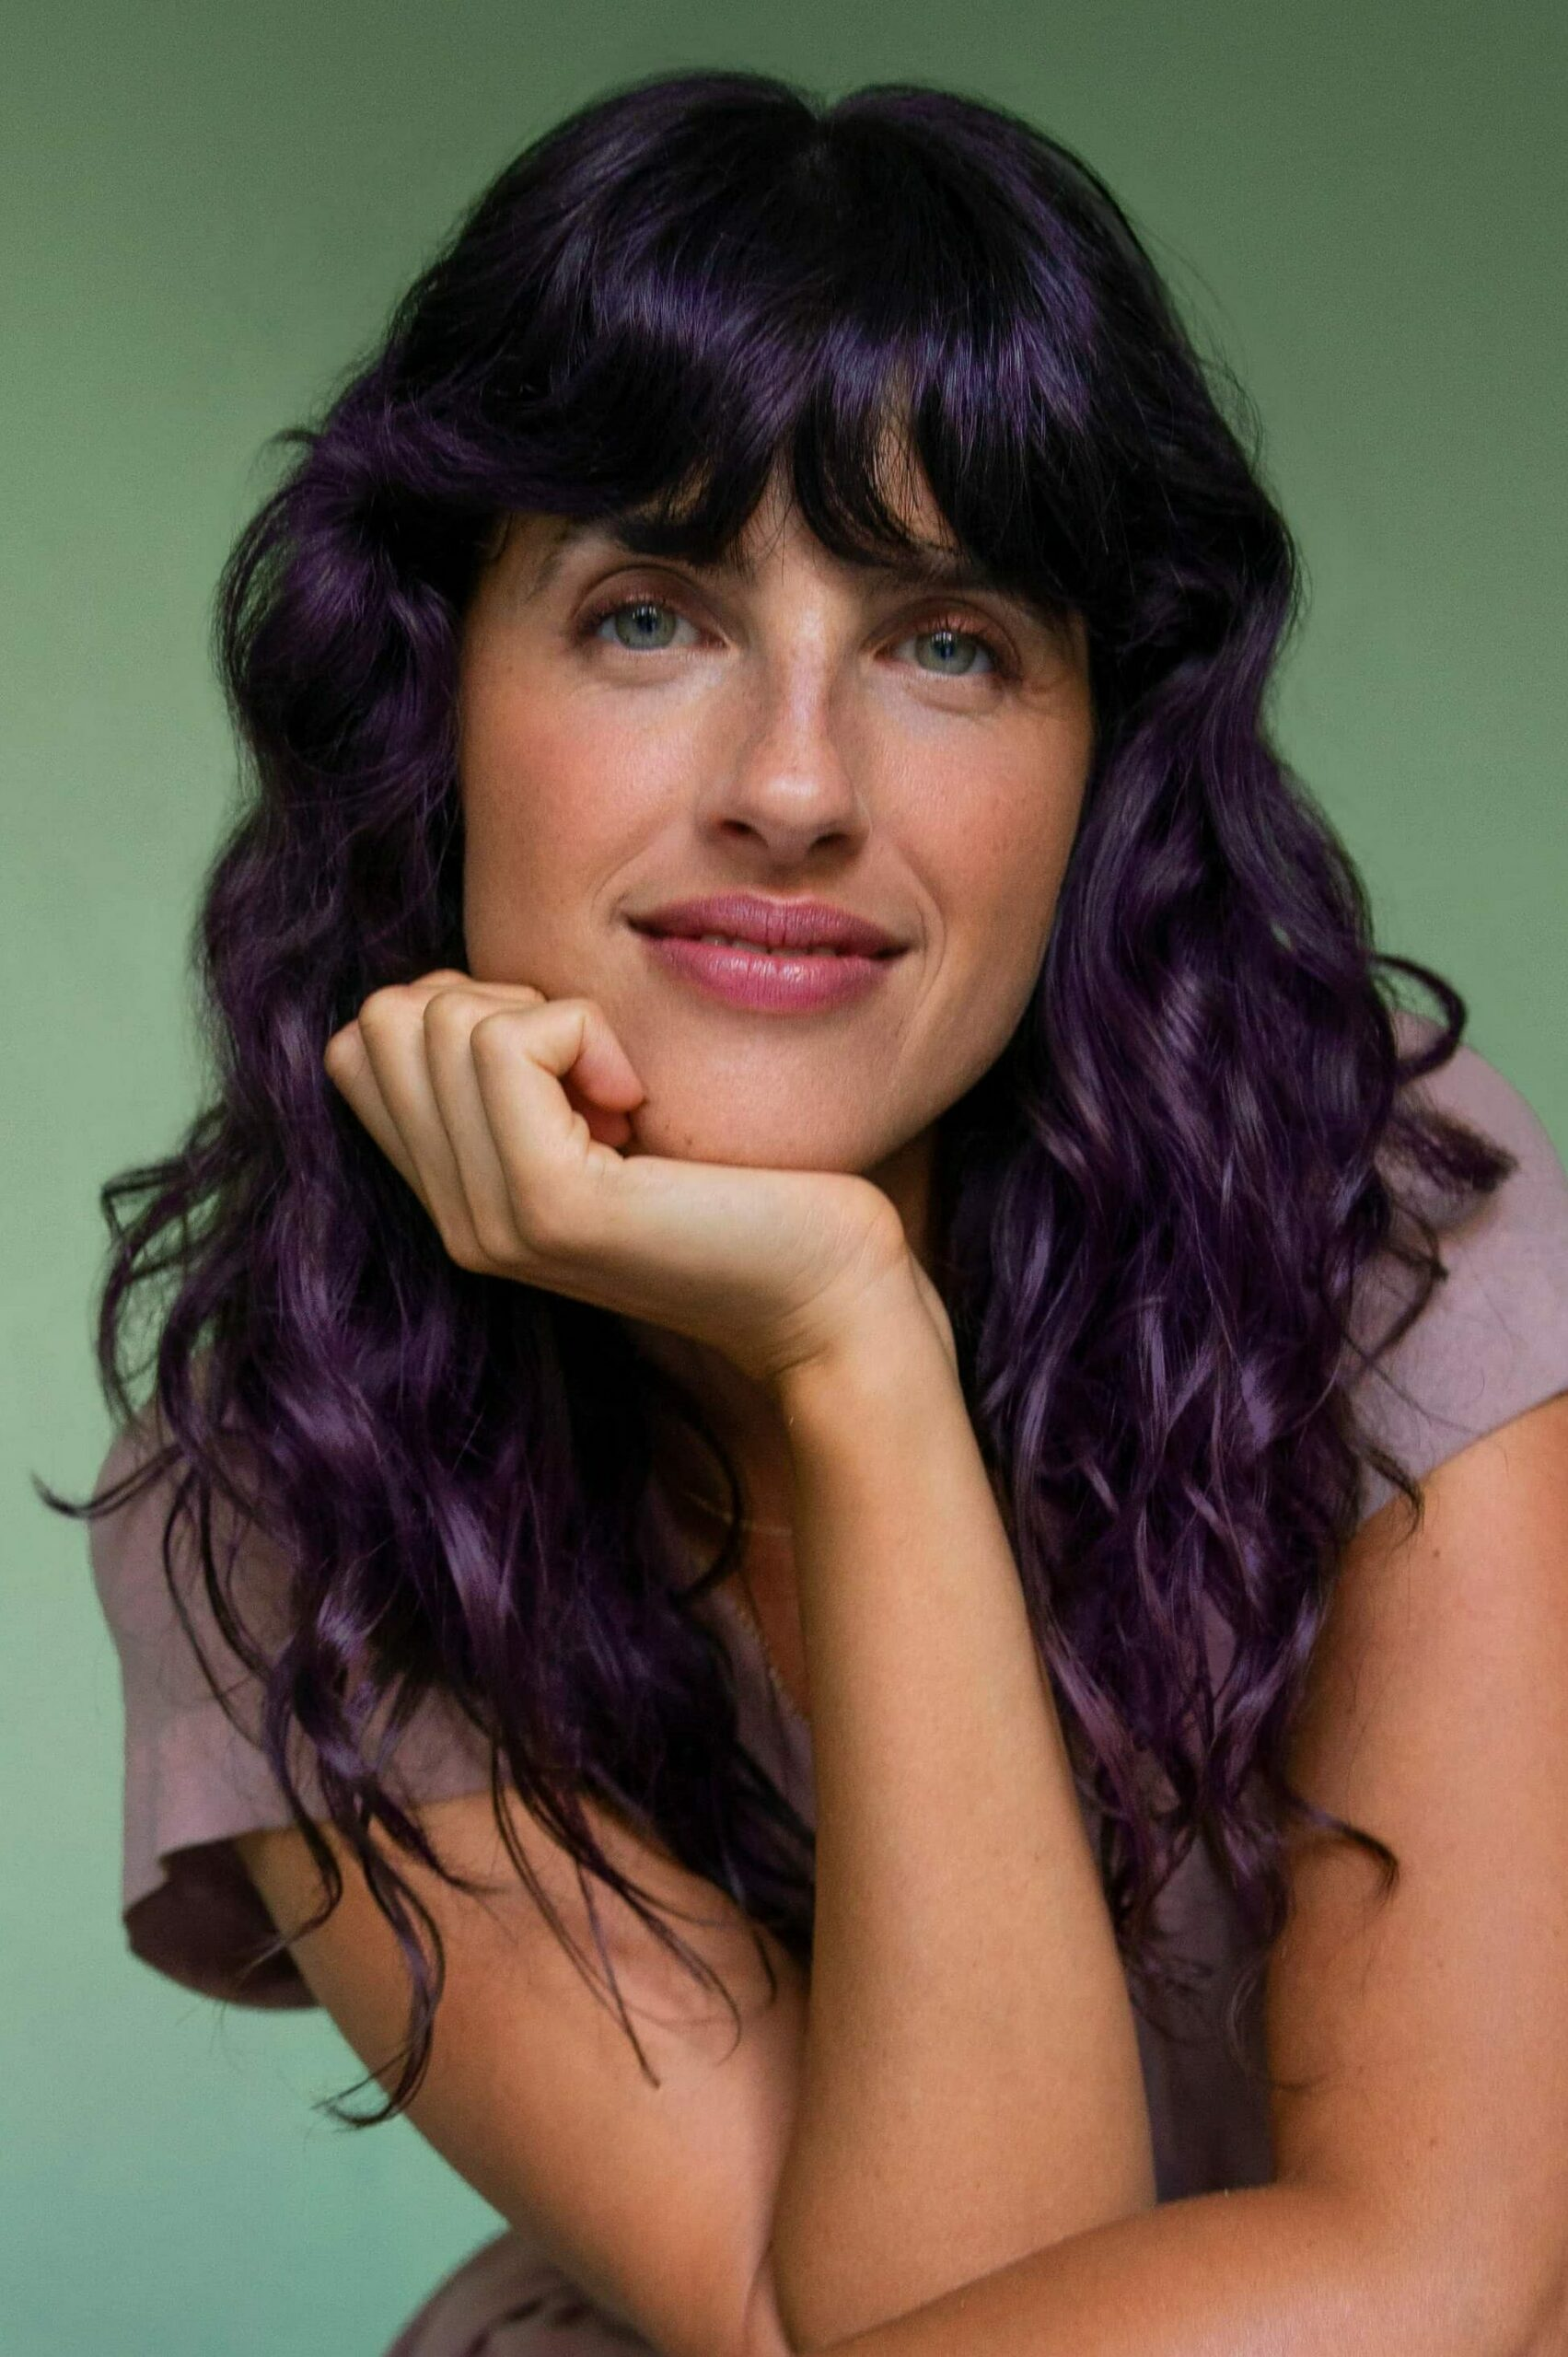 AURA client with brunette hair color used Kyoto Purple Fantasy pigment in her personalized hair Masque.